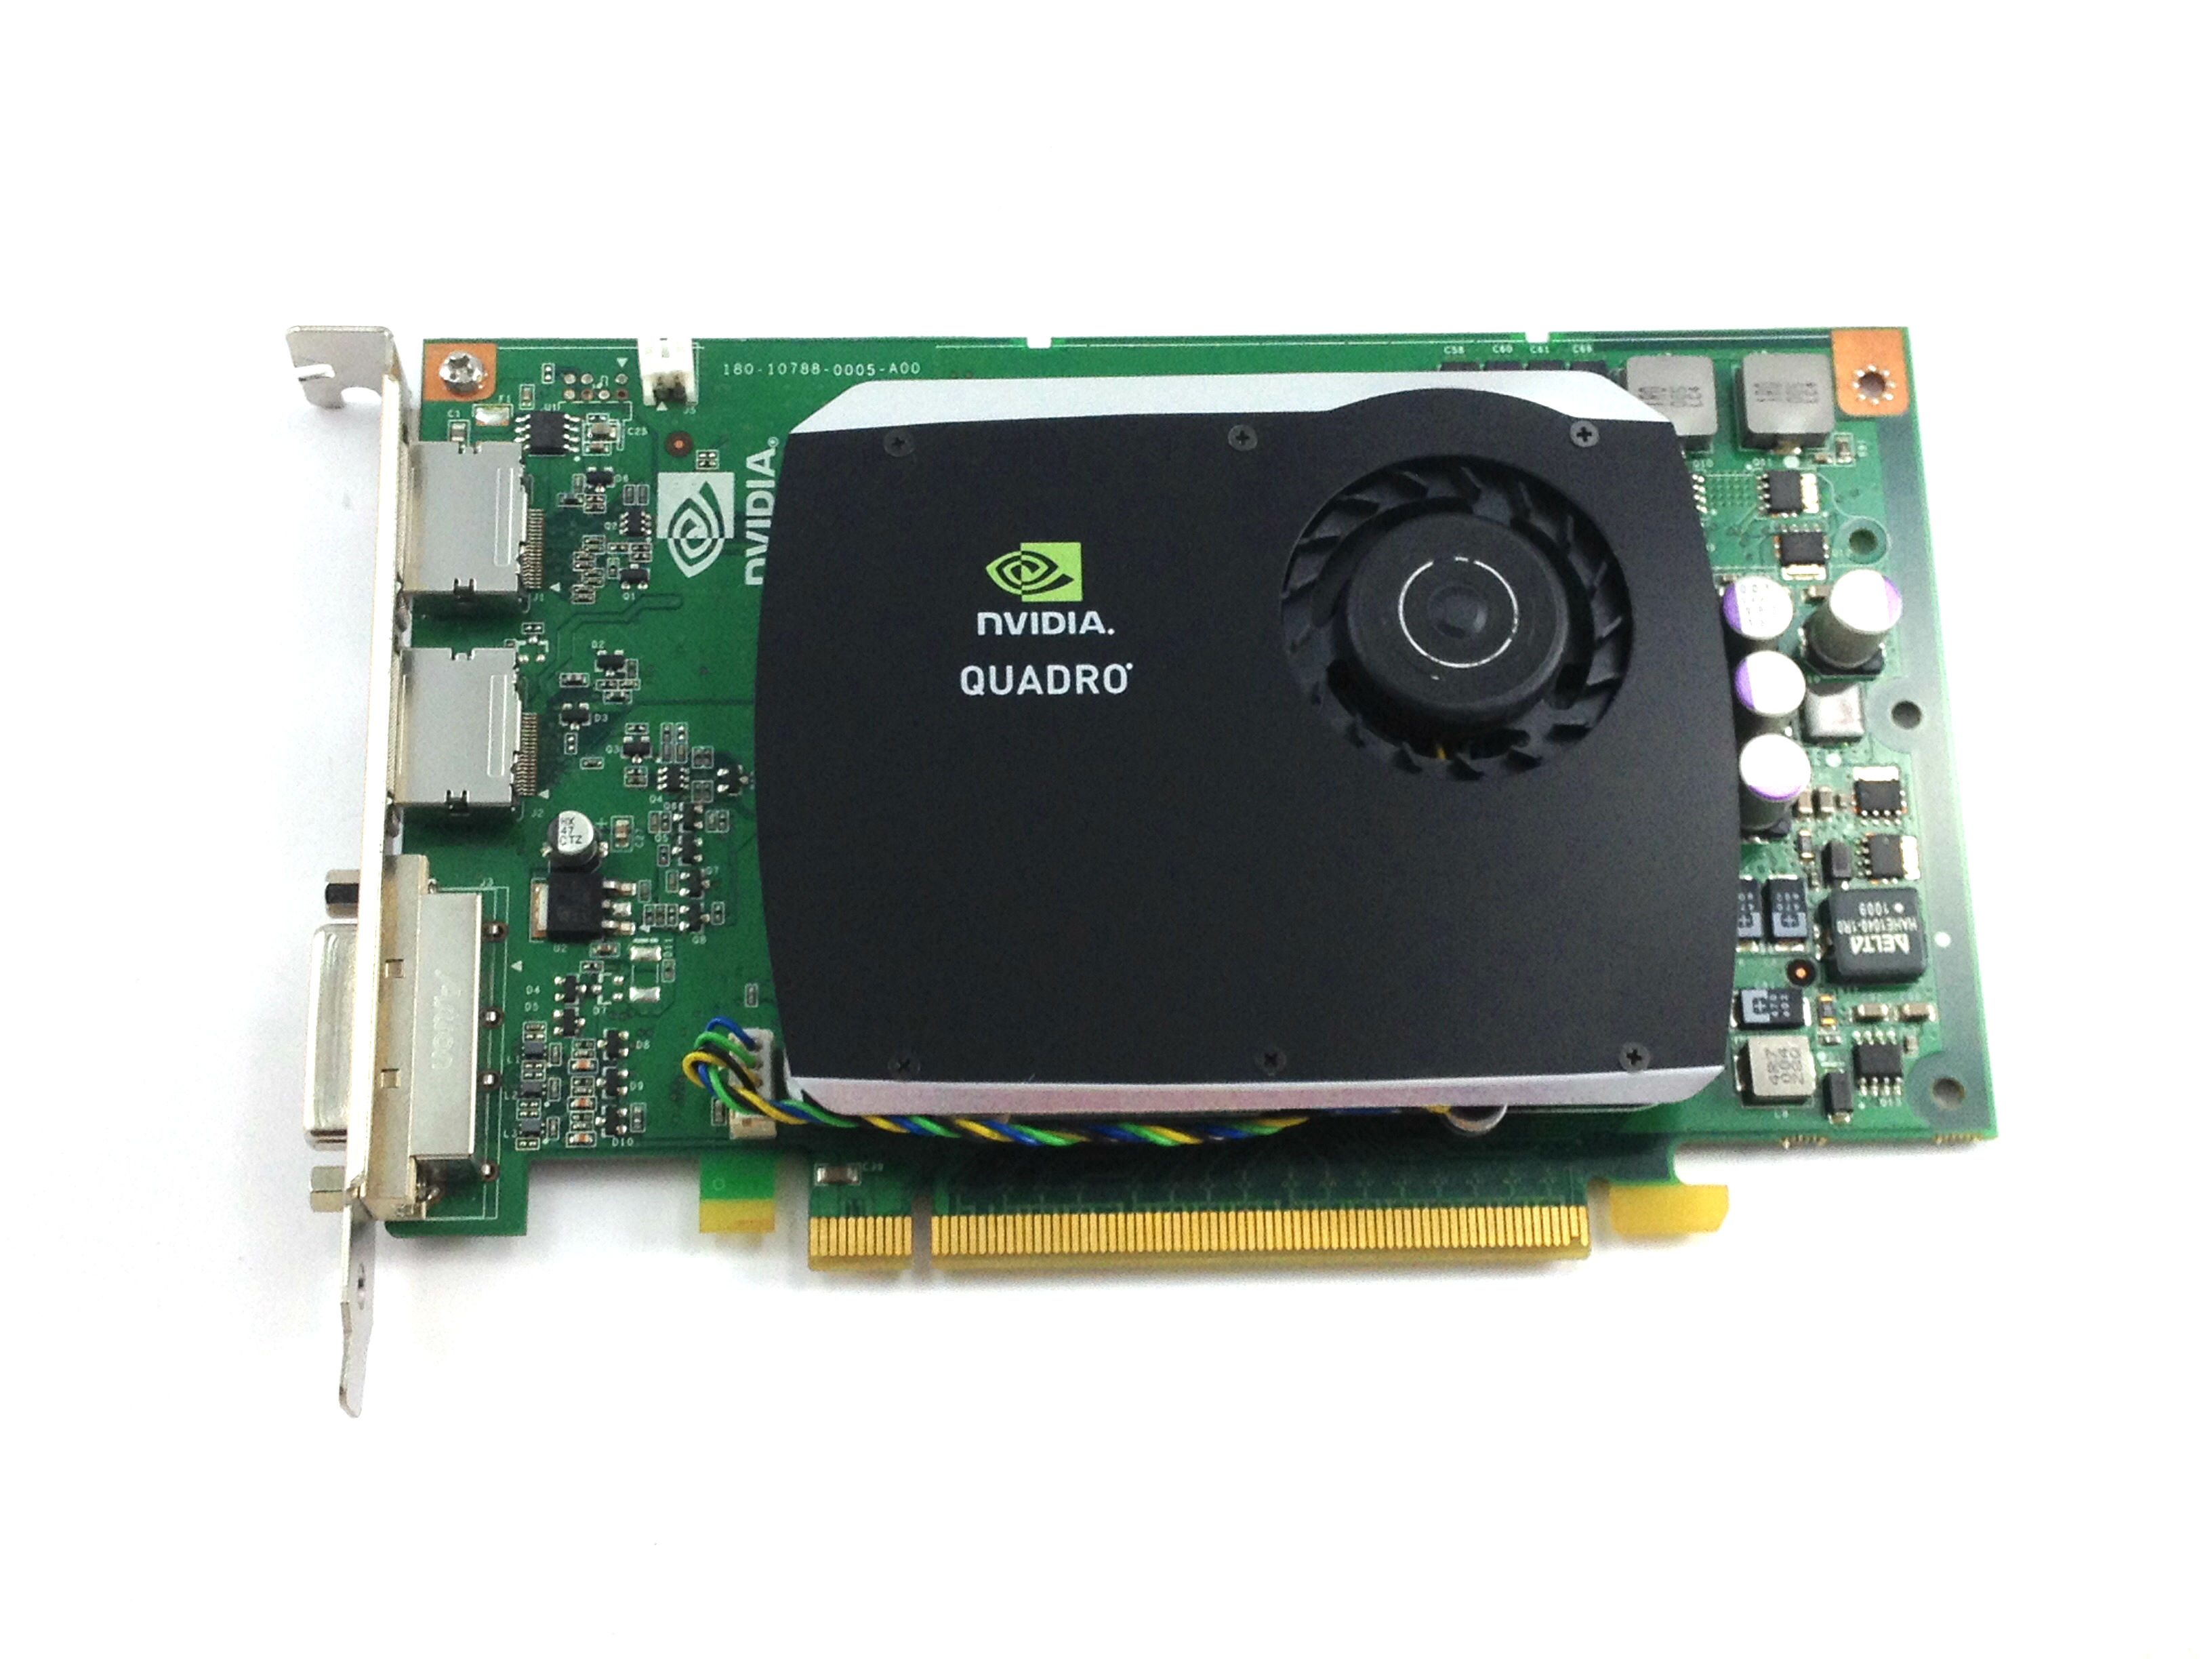 R784K Dell Nvidia Quadro FX 580 512MB DVI Dual Port PCI-E Video Card